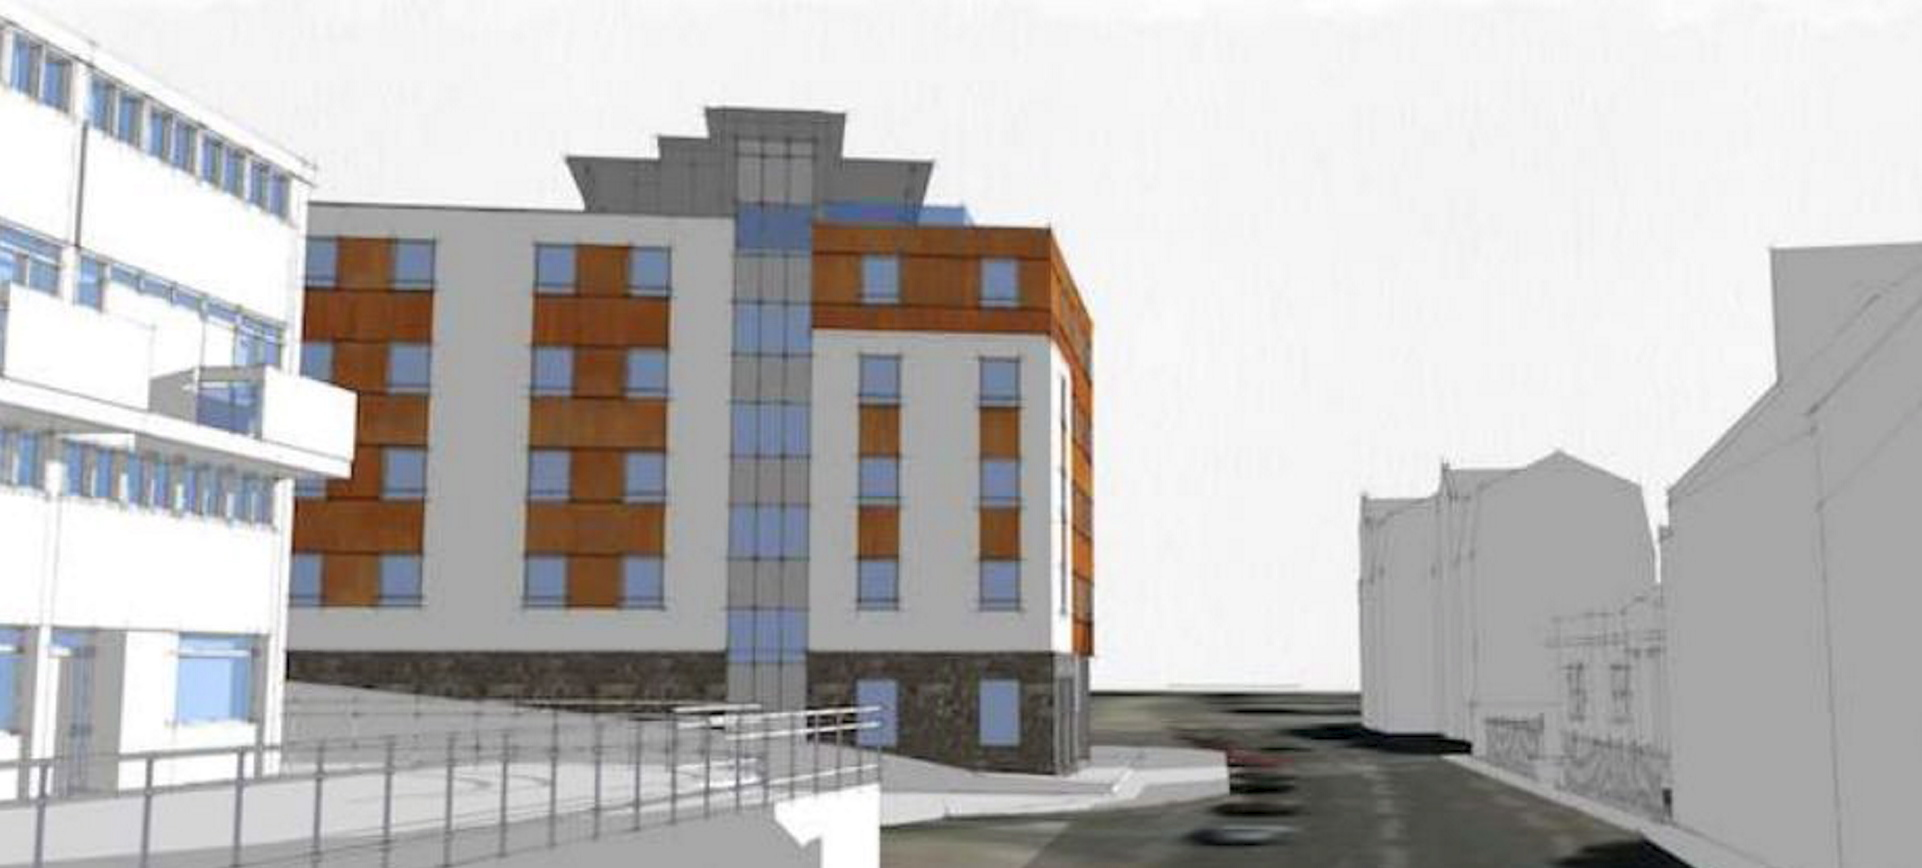 An artist's impression of the student flats plan.